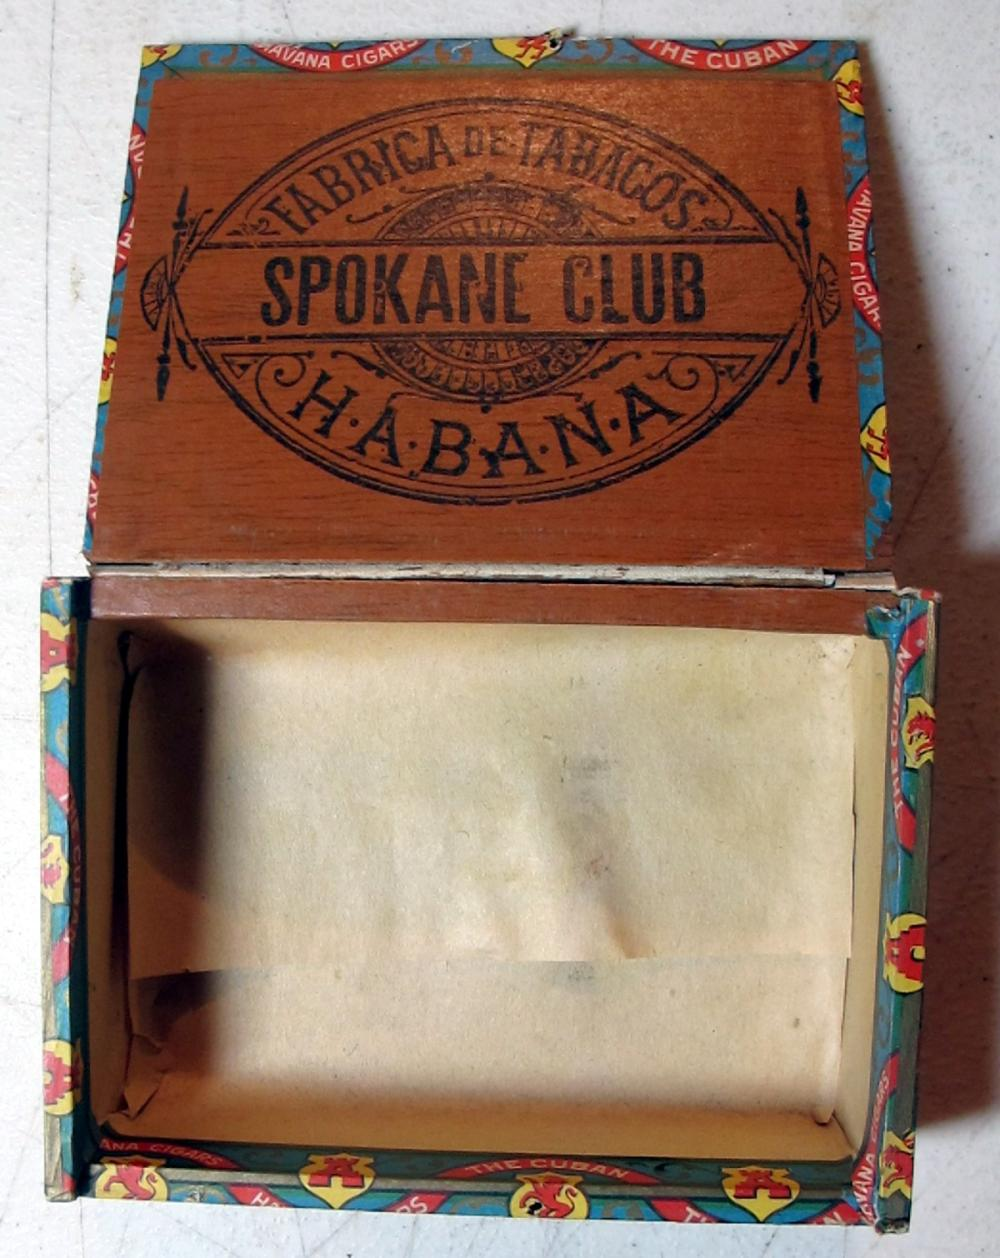 Lot 29: RARE OLD SPOKANE CLUB 10 CT HABANA CUBAN CIGAR BOX SPOKANE WA